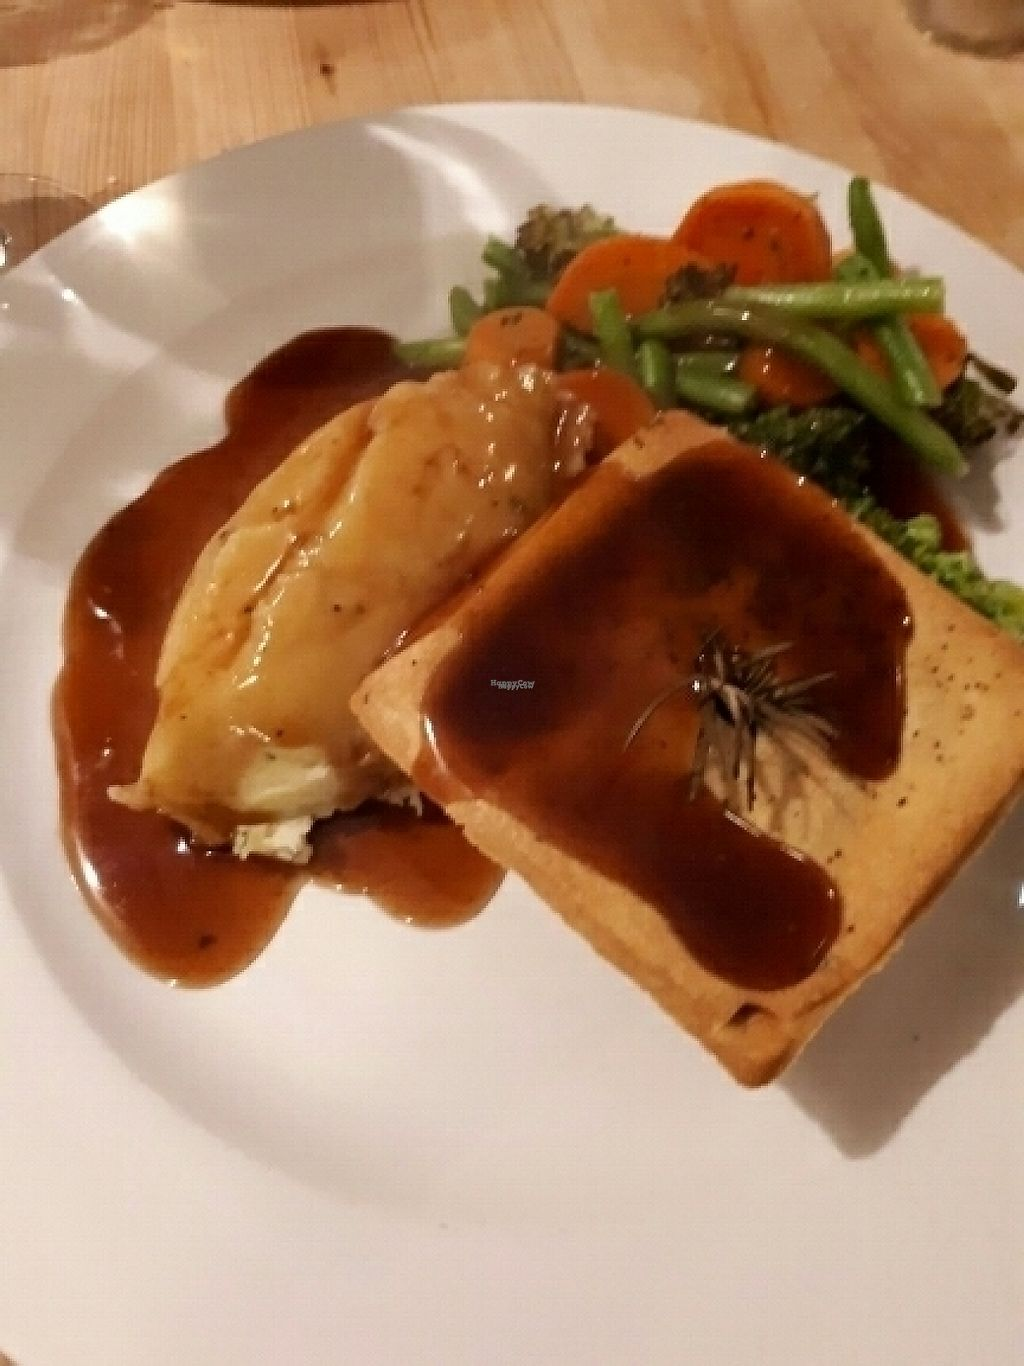 """Photo of Roebuck Inn  by <a href=""""/members/profile/amypattison"""">amypattison</a> <br/>Roast parsnip pie  <br/> March 25, 2017  - <a href='/contact/abuse/image/57290/240685'>Report</a>"""